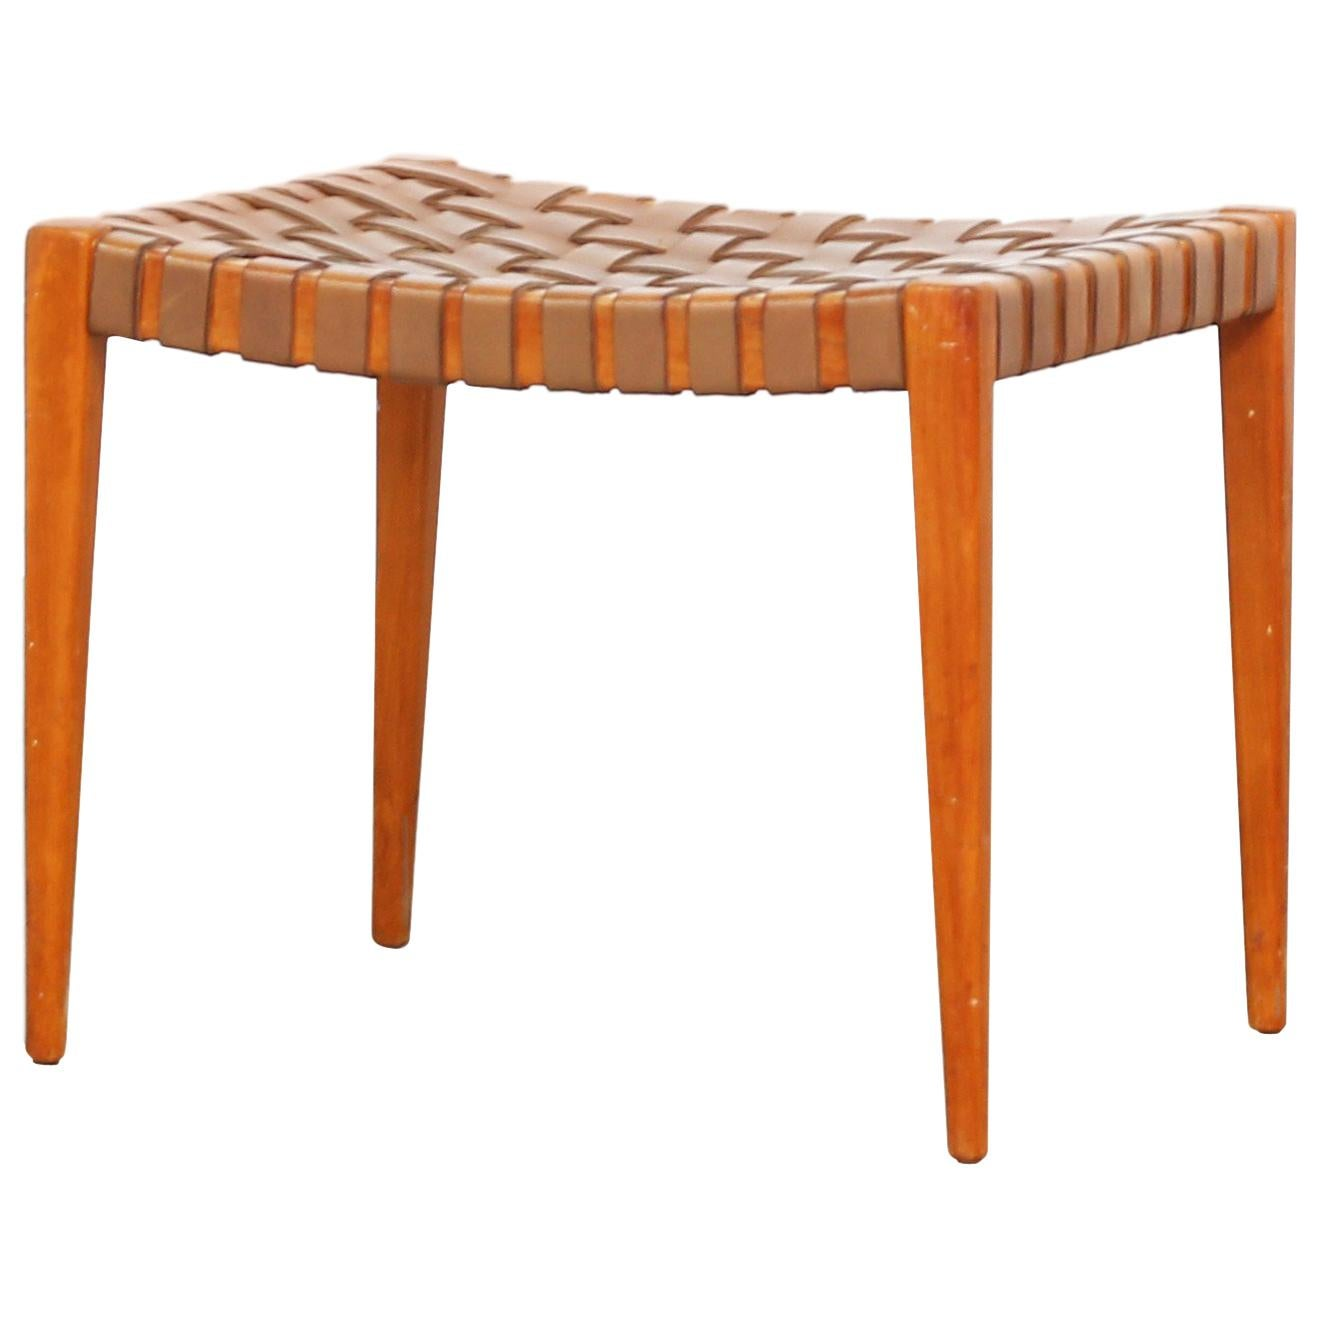 German Stool Ottoman Attributed to Hartmut Lohmeyer, Germany, 1950